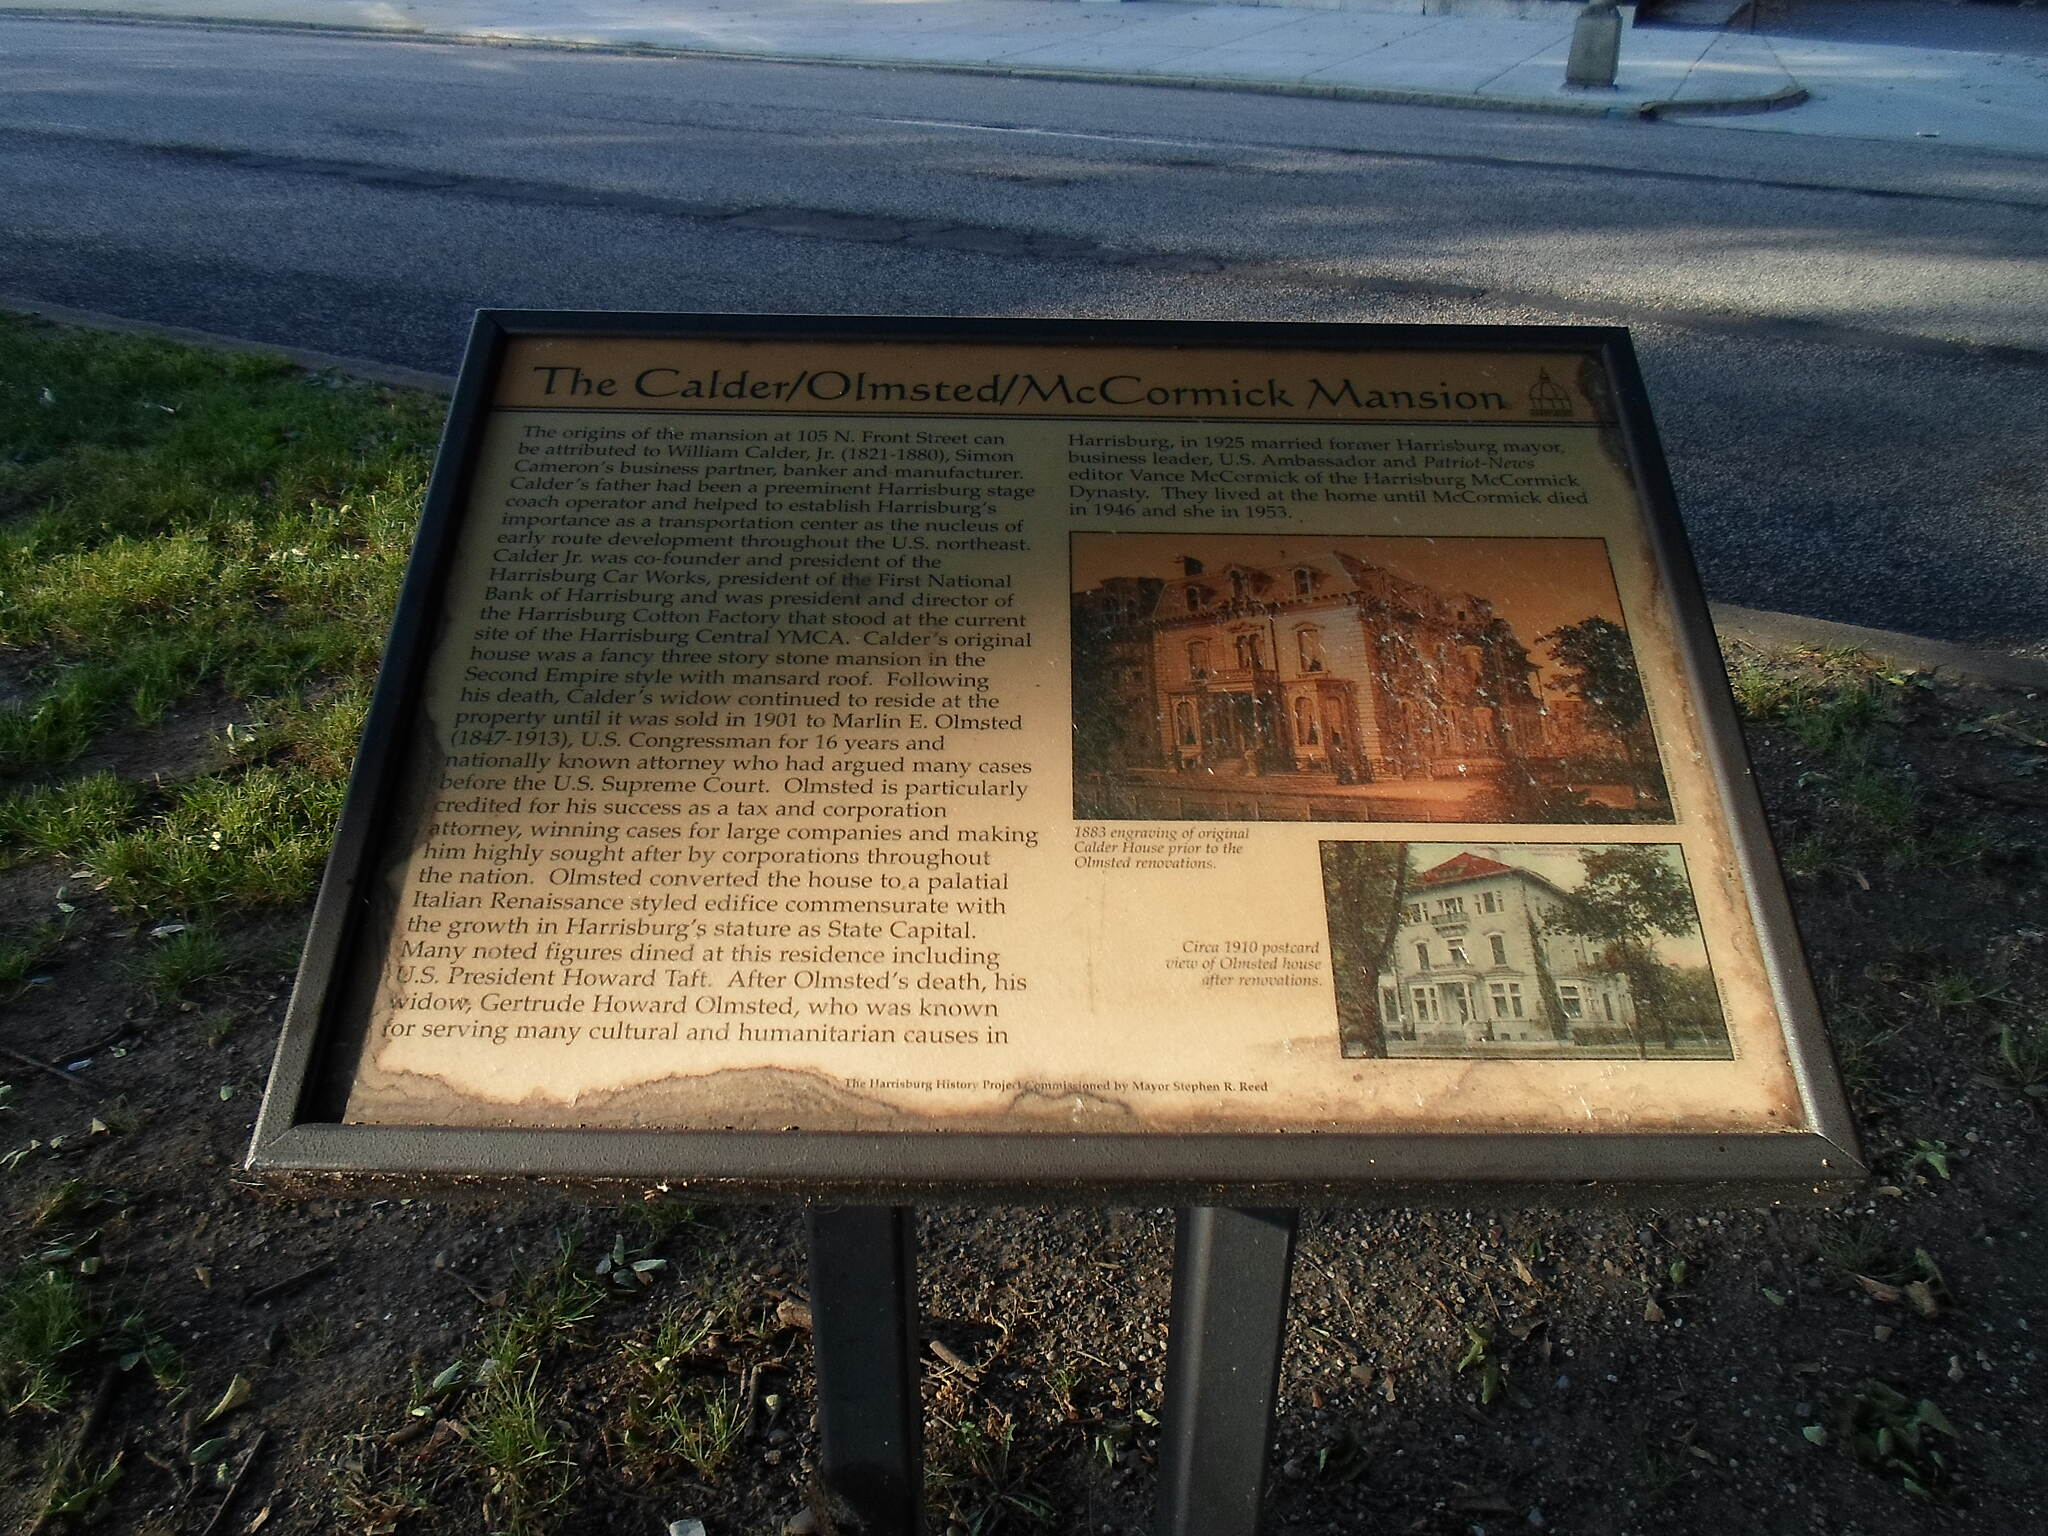 Capital Area Greenbelt Capital Area Greenbelt Interpretive sign across from a key landmark on Front St. in Harrisburg.